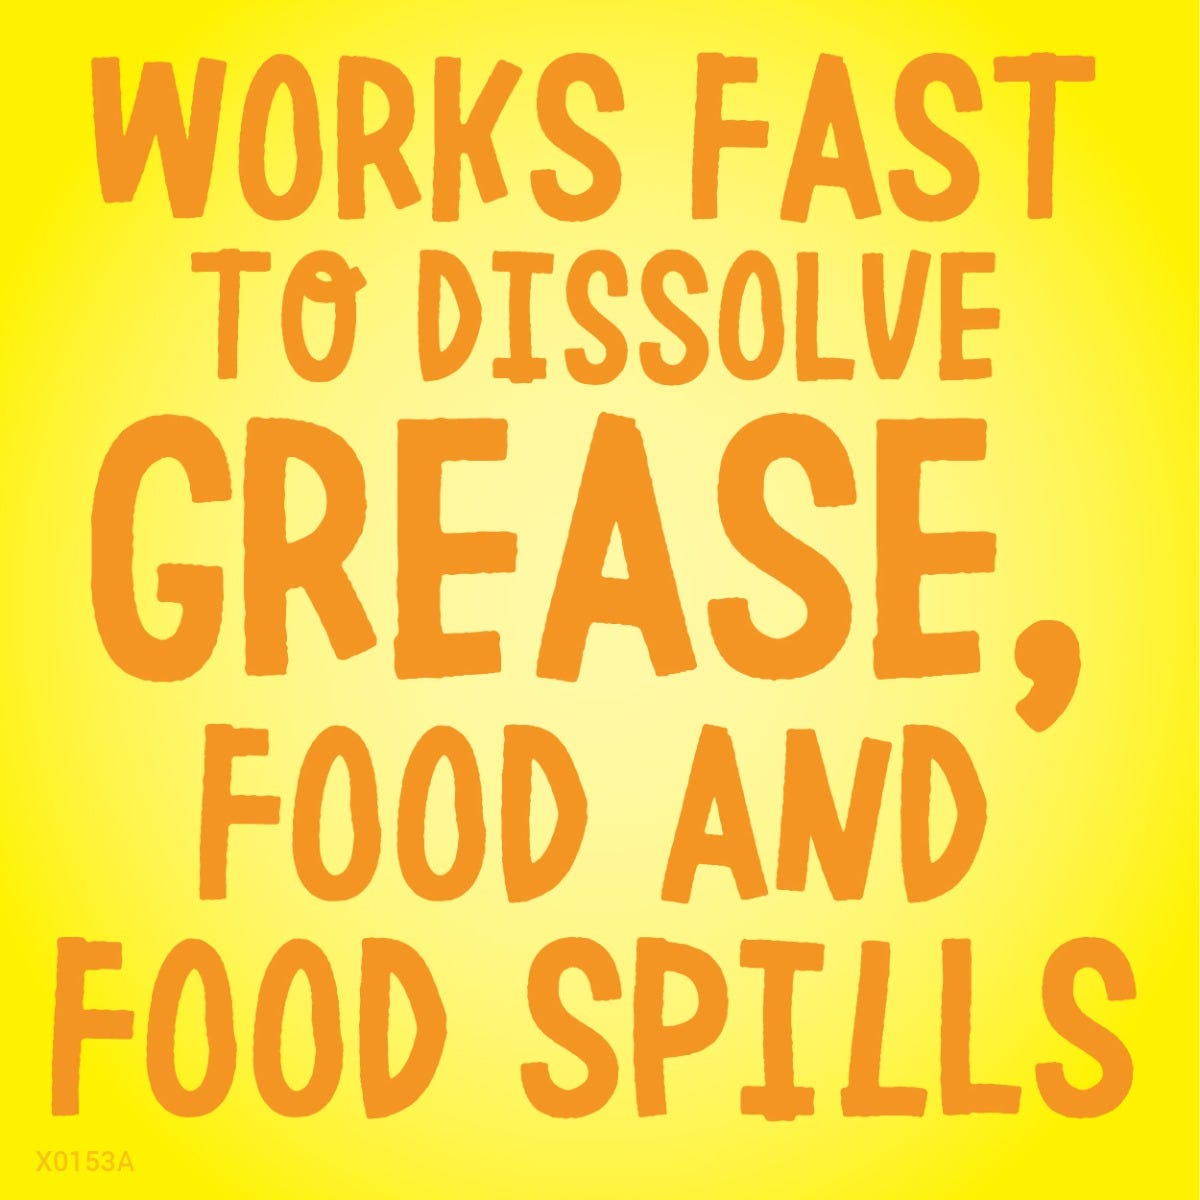 Dissolve grease fast